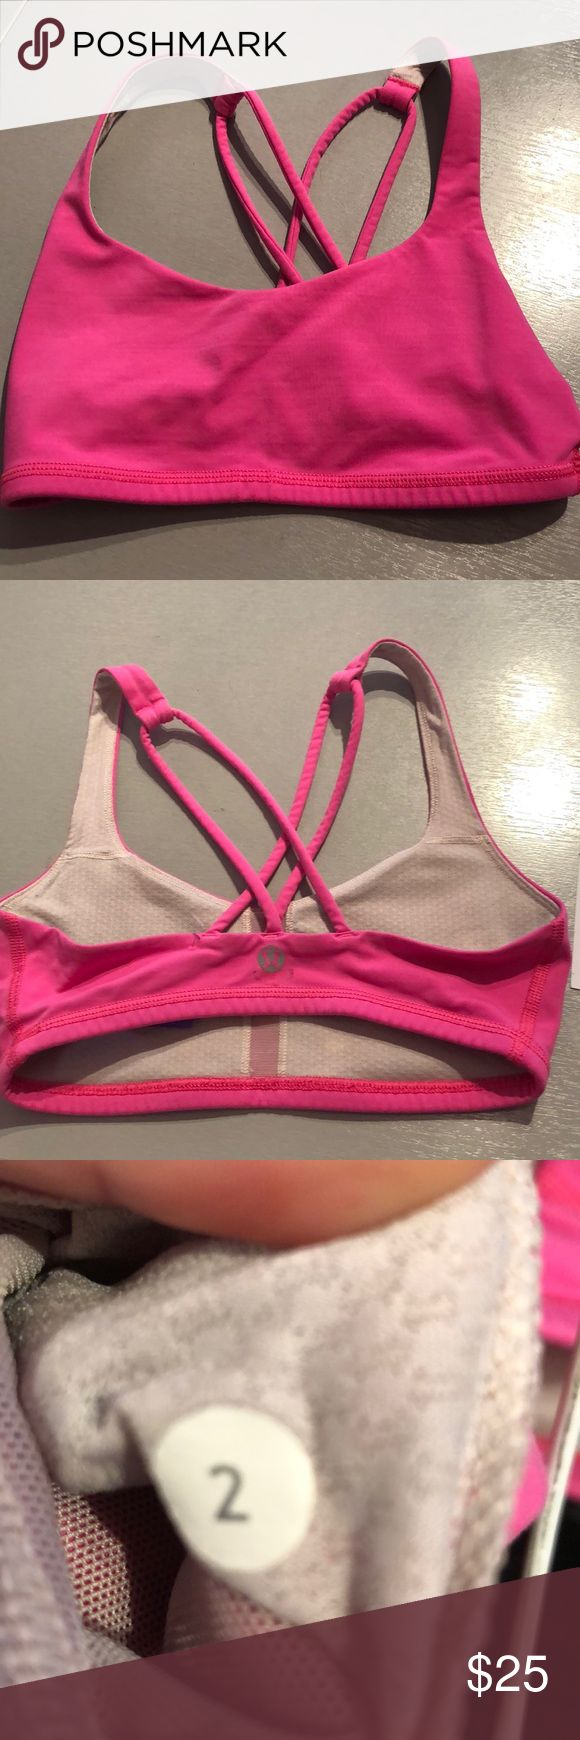 Lululemon 2 pink sports bra Lululemon 2 pink sports bra. This bra has a racerback cut. The straps have two thin layers on each side. The outside of the bra is hot pink, while the inside is a cream color. Gently used, good condition. Consigned to my boutique, no trades lululemon athletica Intimates & Sleepwear Bras